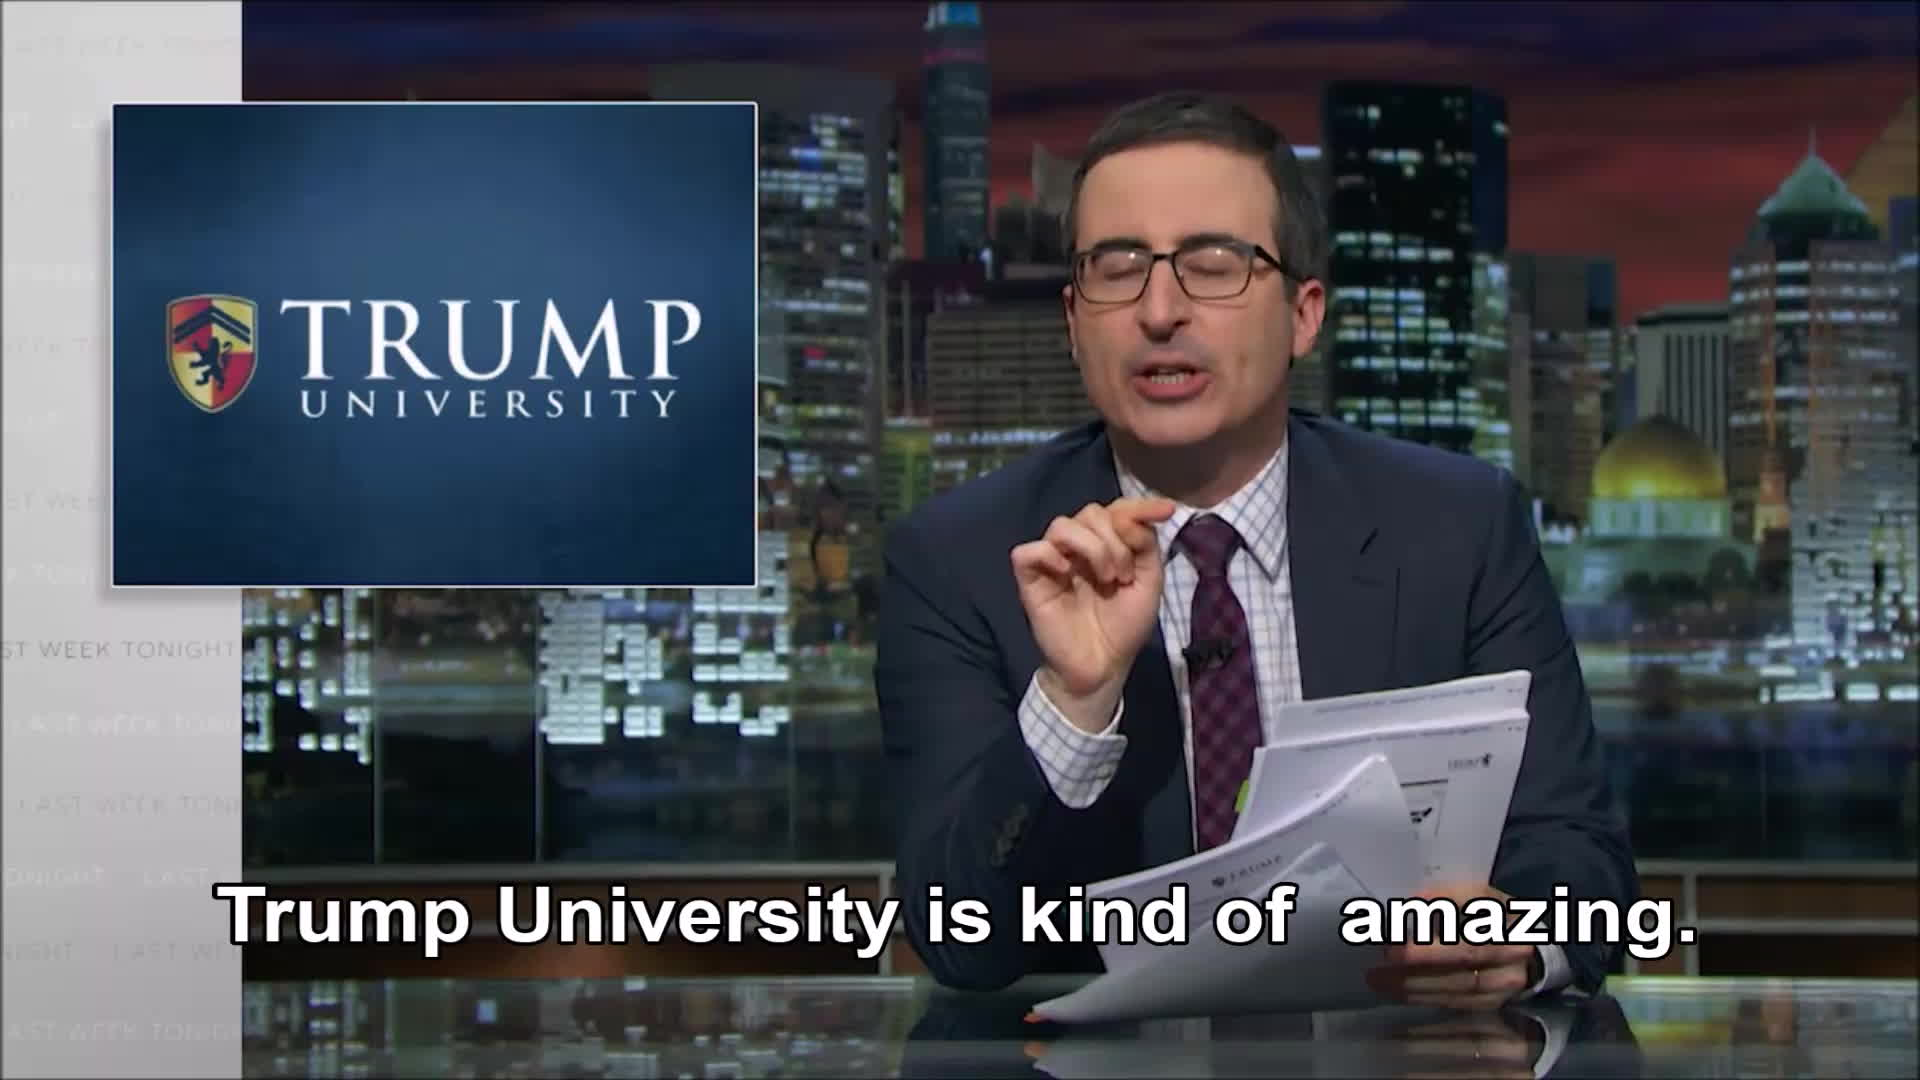 Last week Tonight with John Oliver GIFs